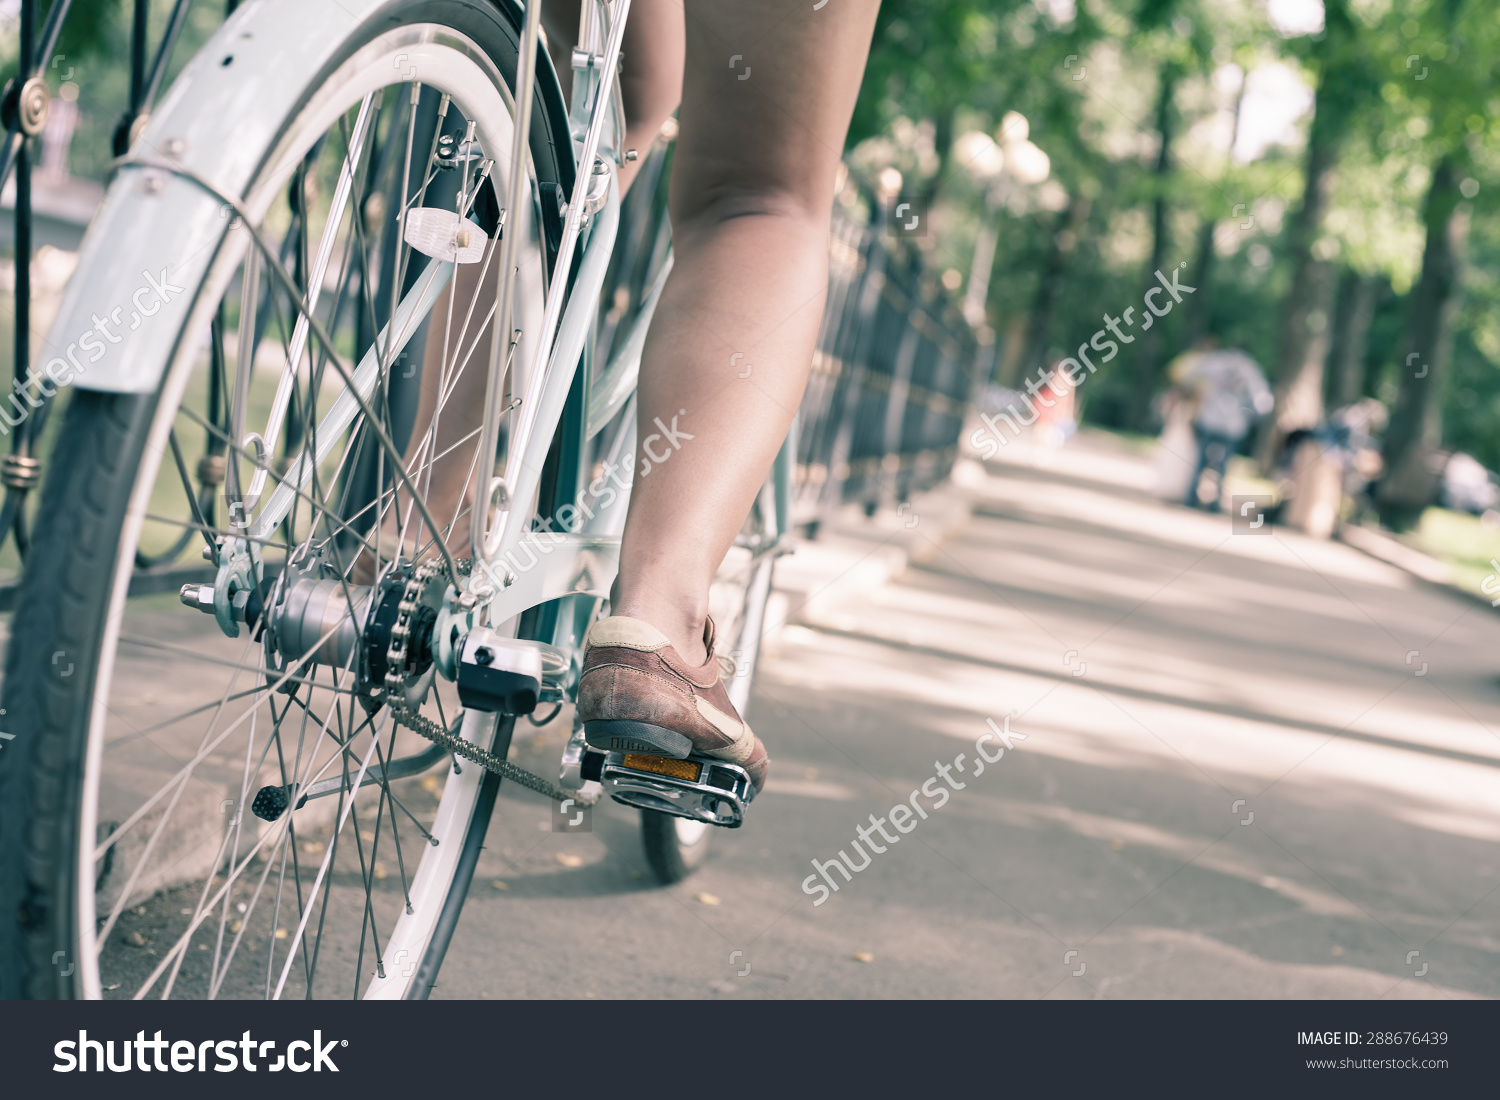 stock-photo-closeup-woman-riding-by-blue-vintage-city-bicycle-at-the-city-center-it-is-like-concept-for-288676439